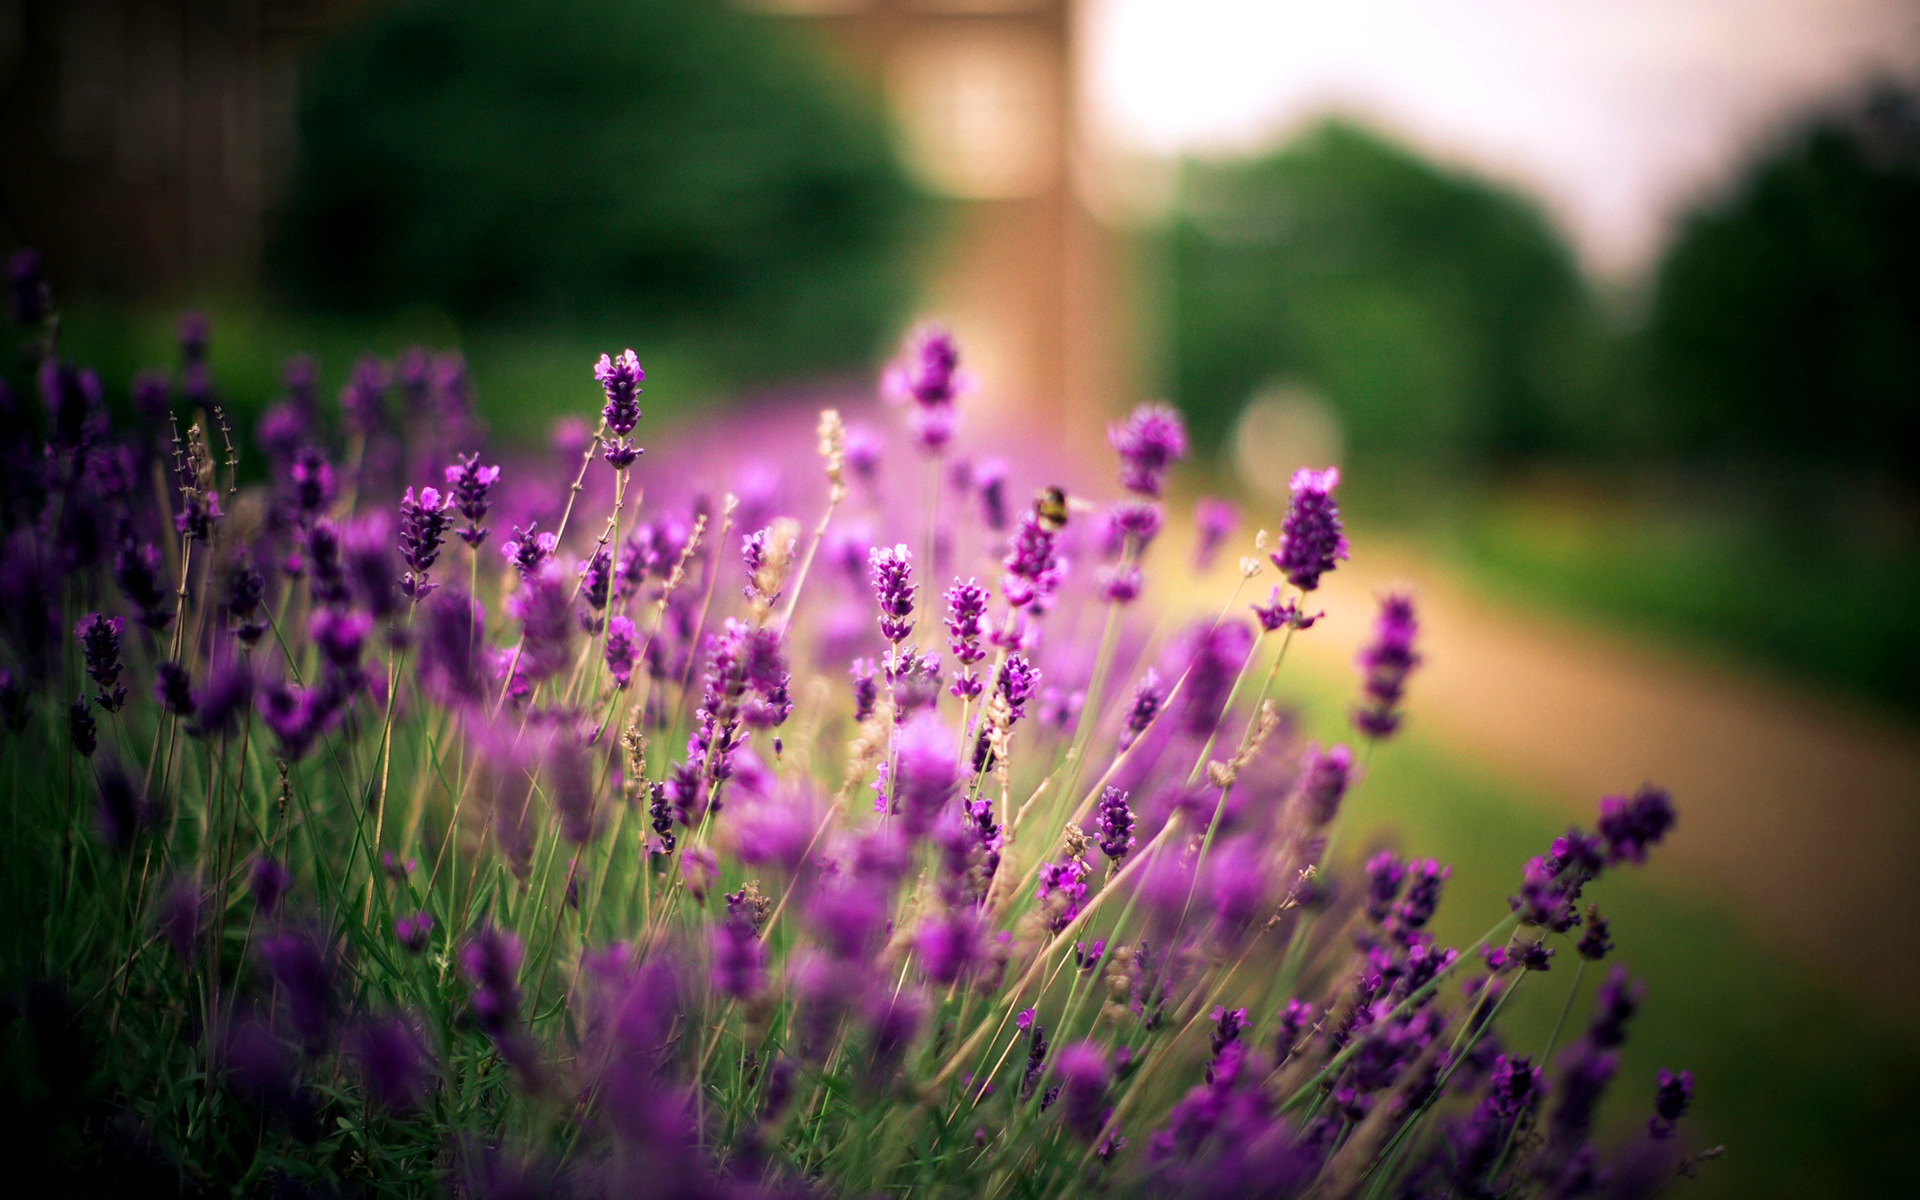 Lavender Wallpapers High Quality | Download Free